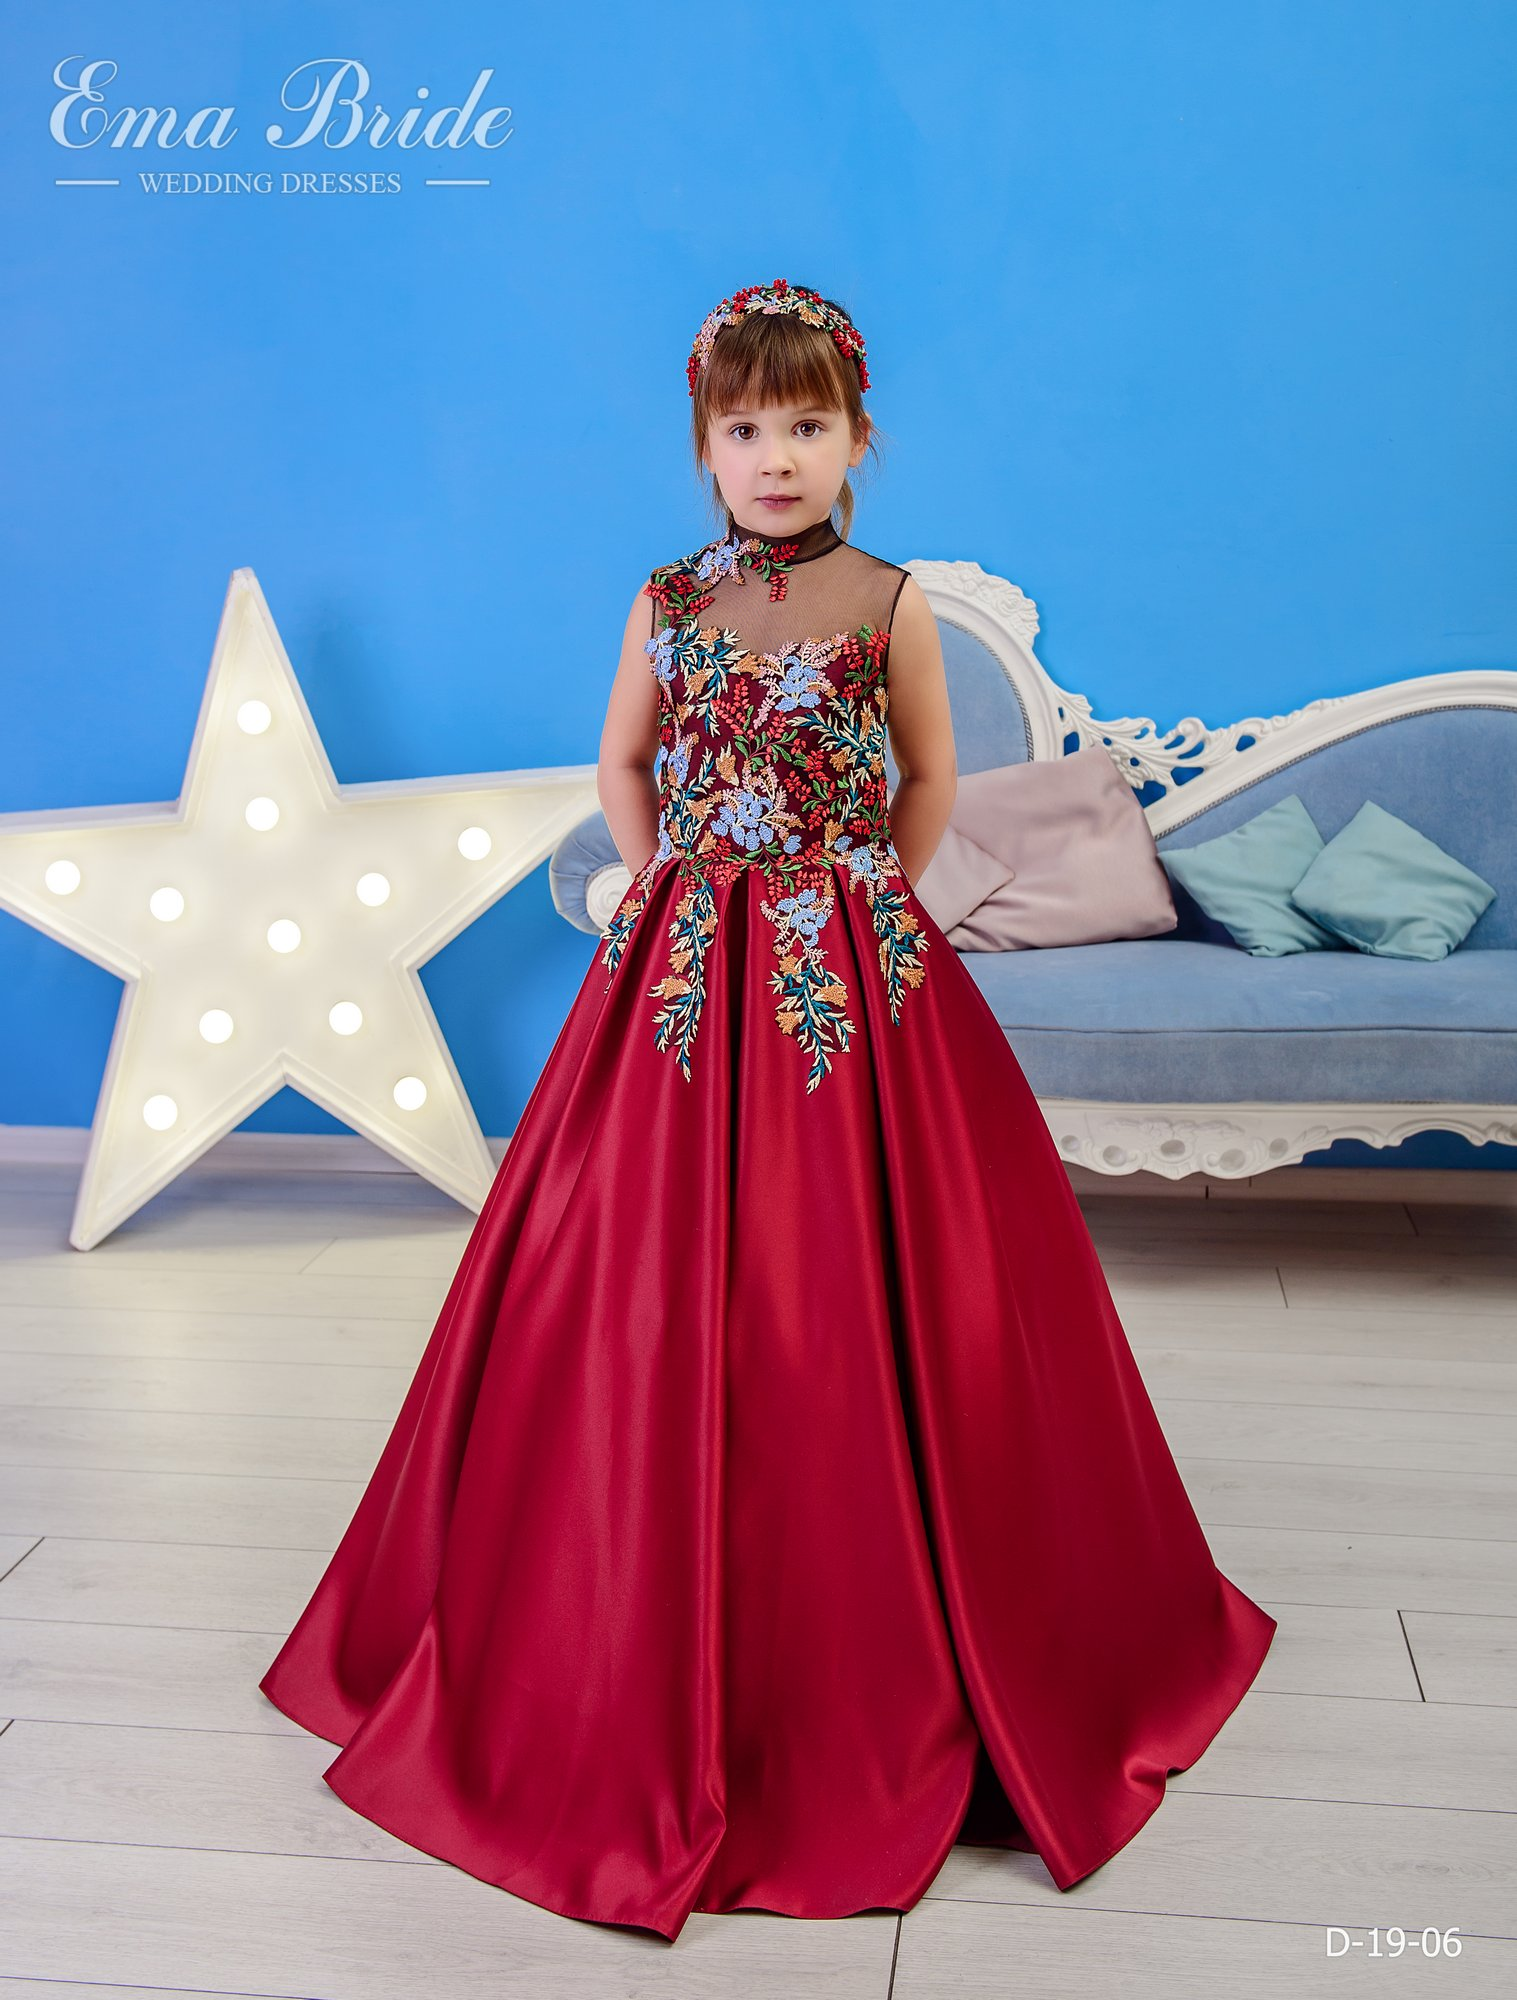 Children's dress by EmaBride D-19-06 2019